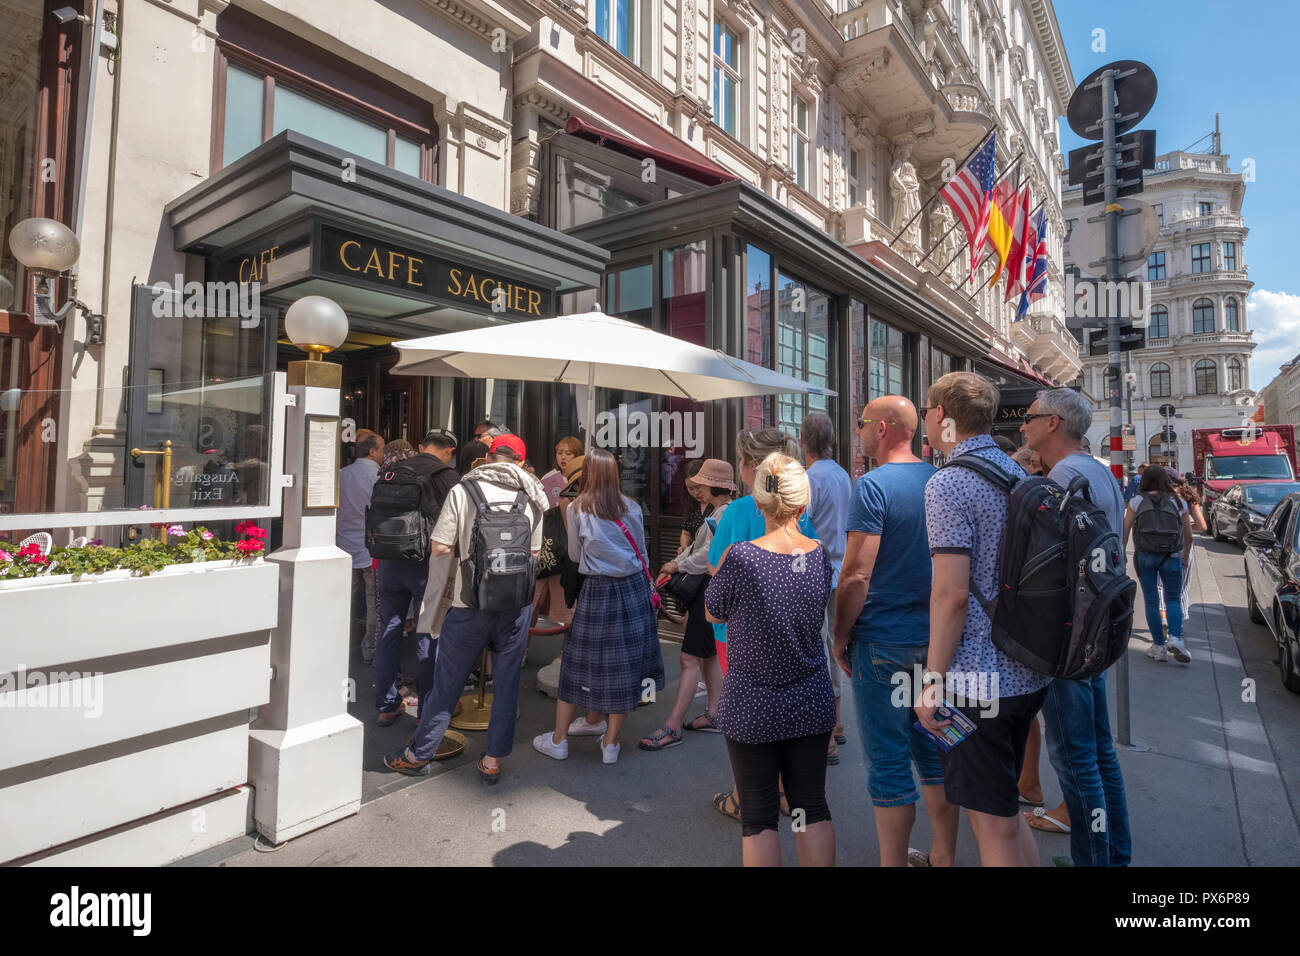 Tourists queue at the entrance of the famous Cafe Sacher in Vienna, Austria, Europe - Stock Image